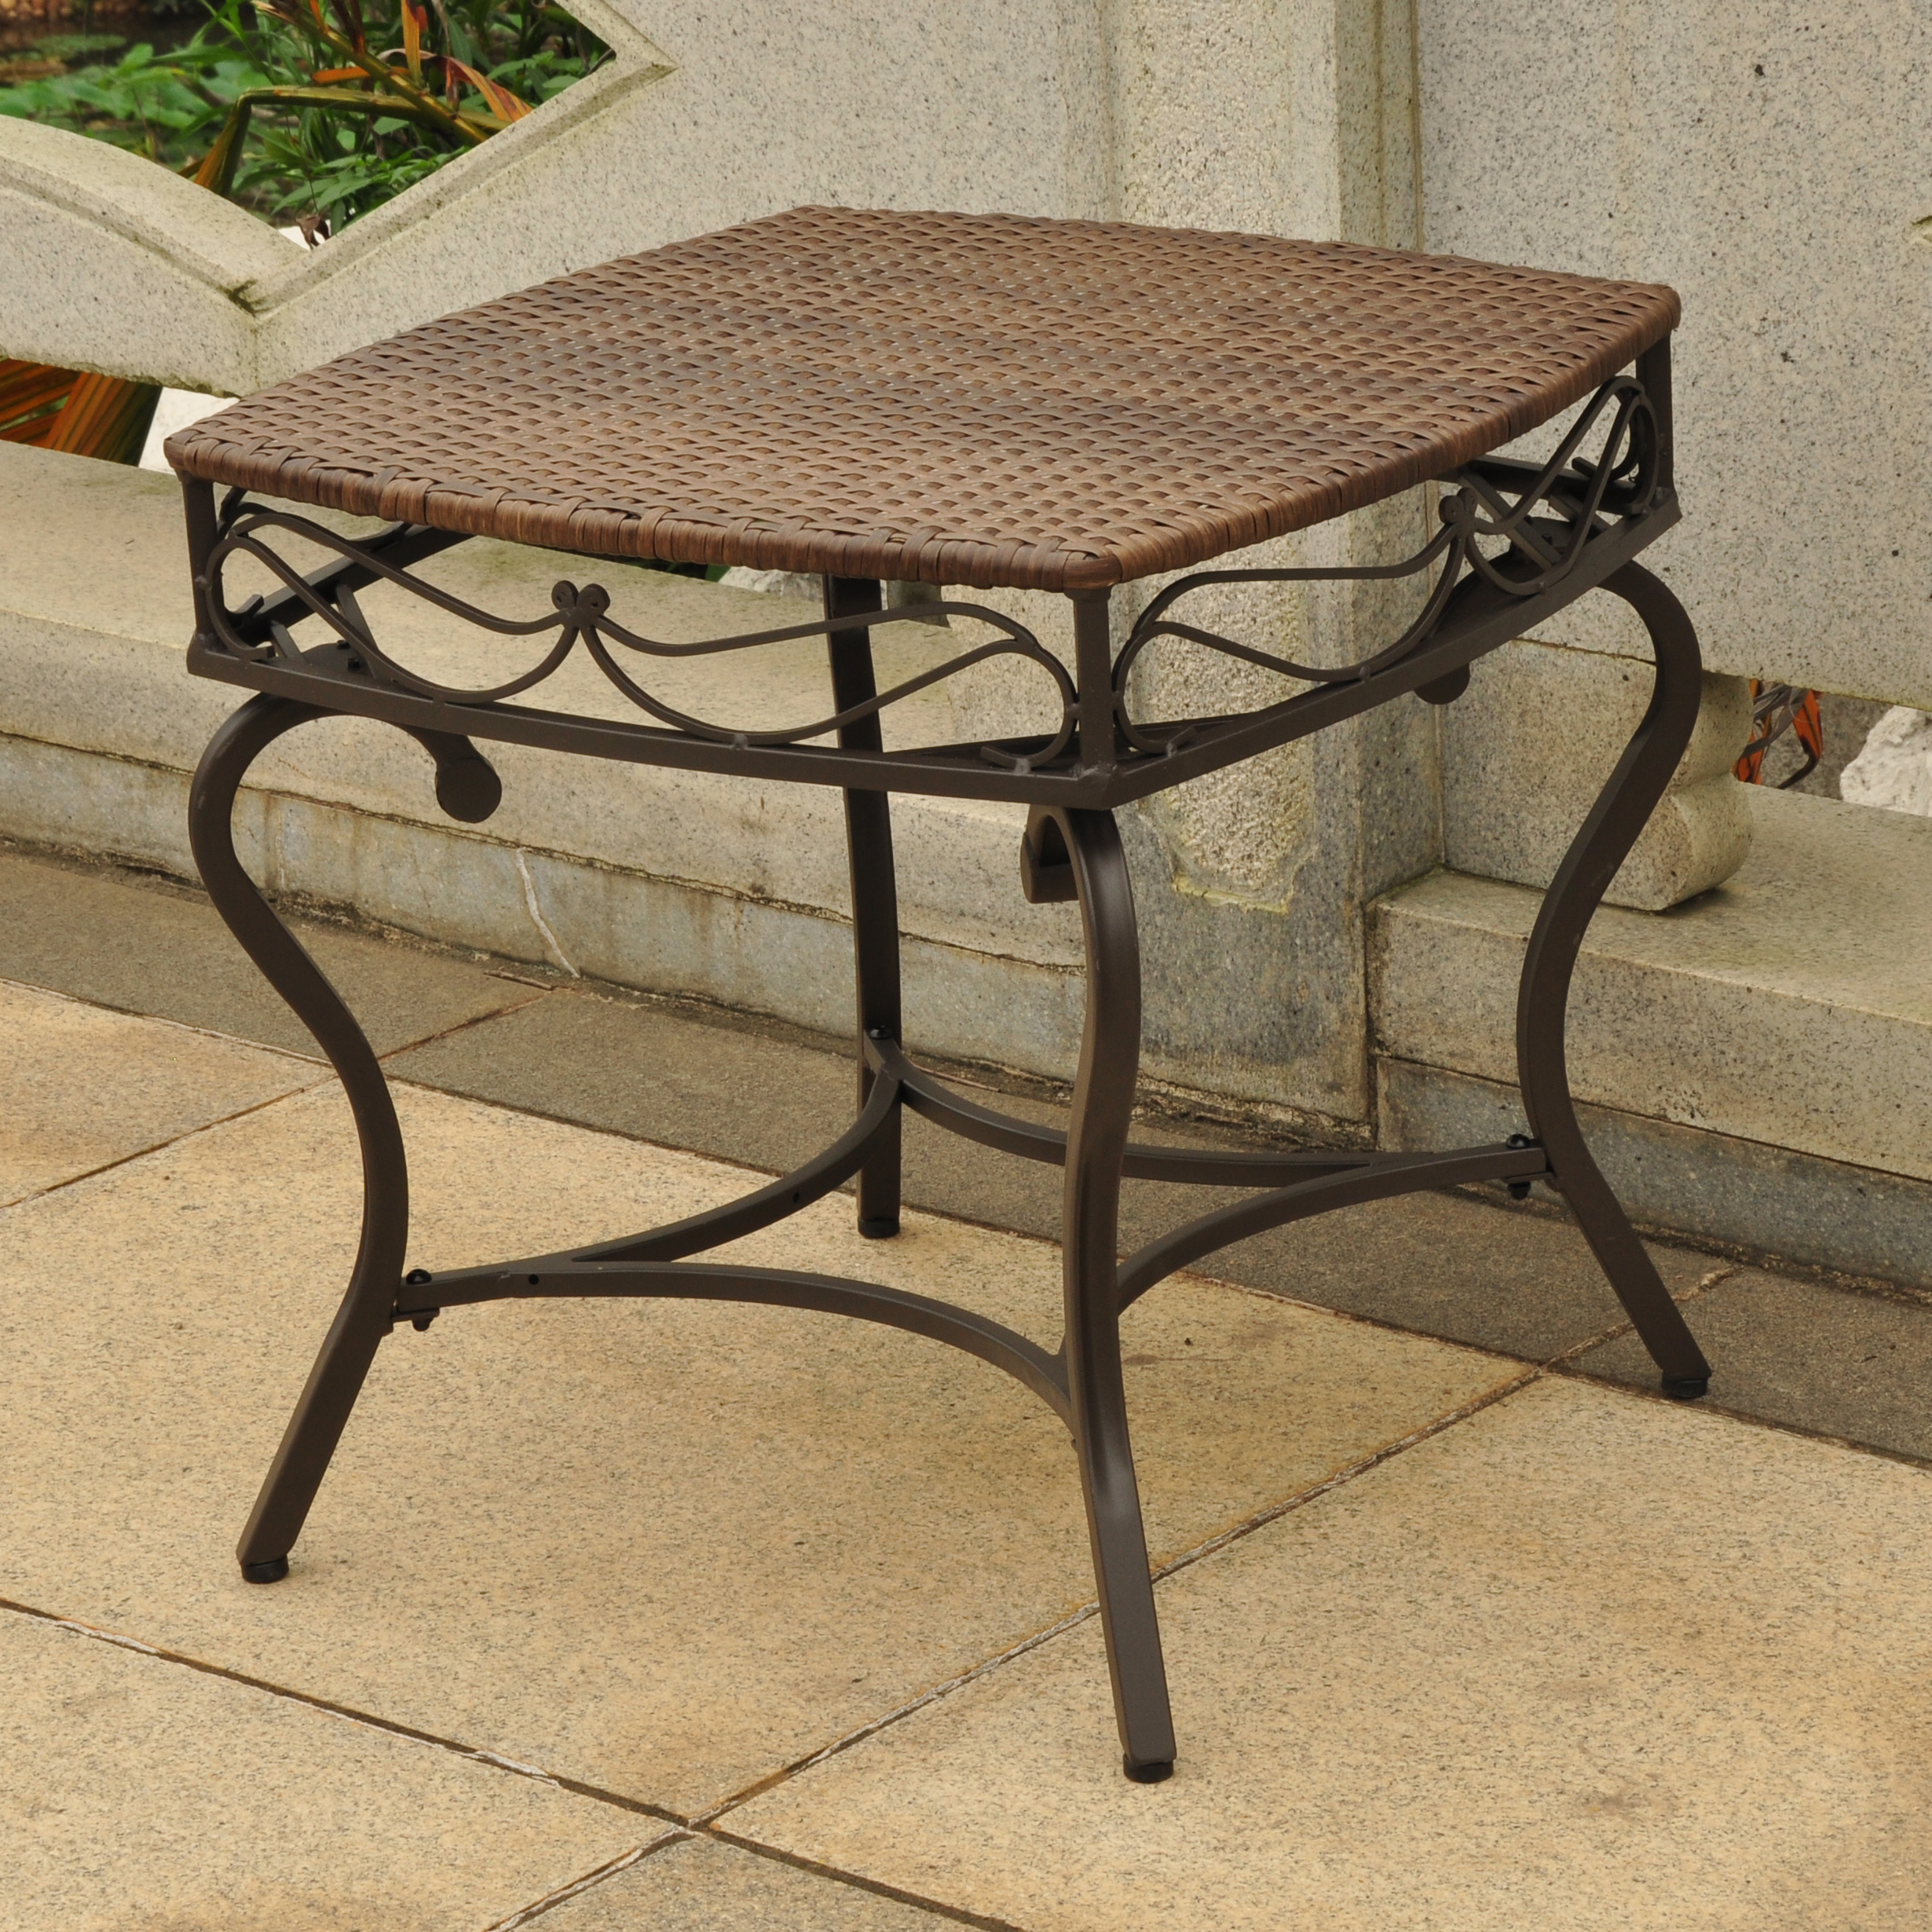 wicker tables abn foldable accent table brown valencia resin steel square round side antique quick view unique entryway west elm elephant lamp circular garden furniture covers